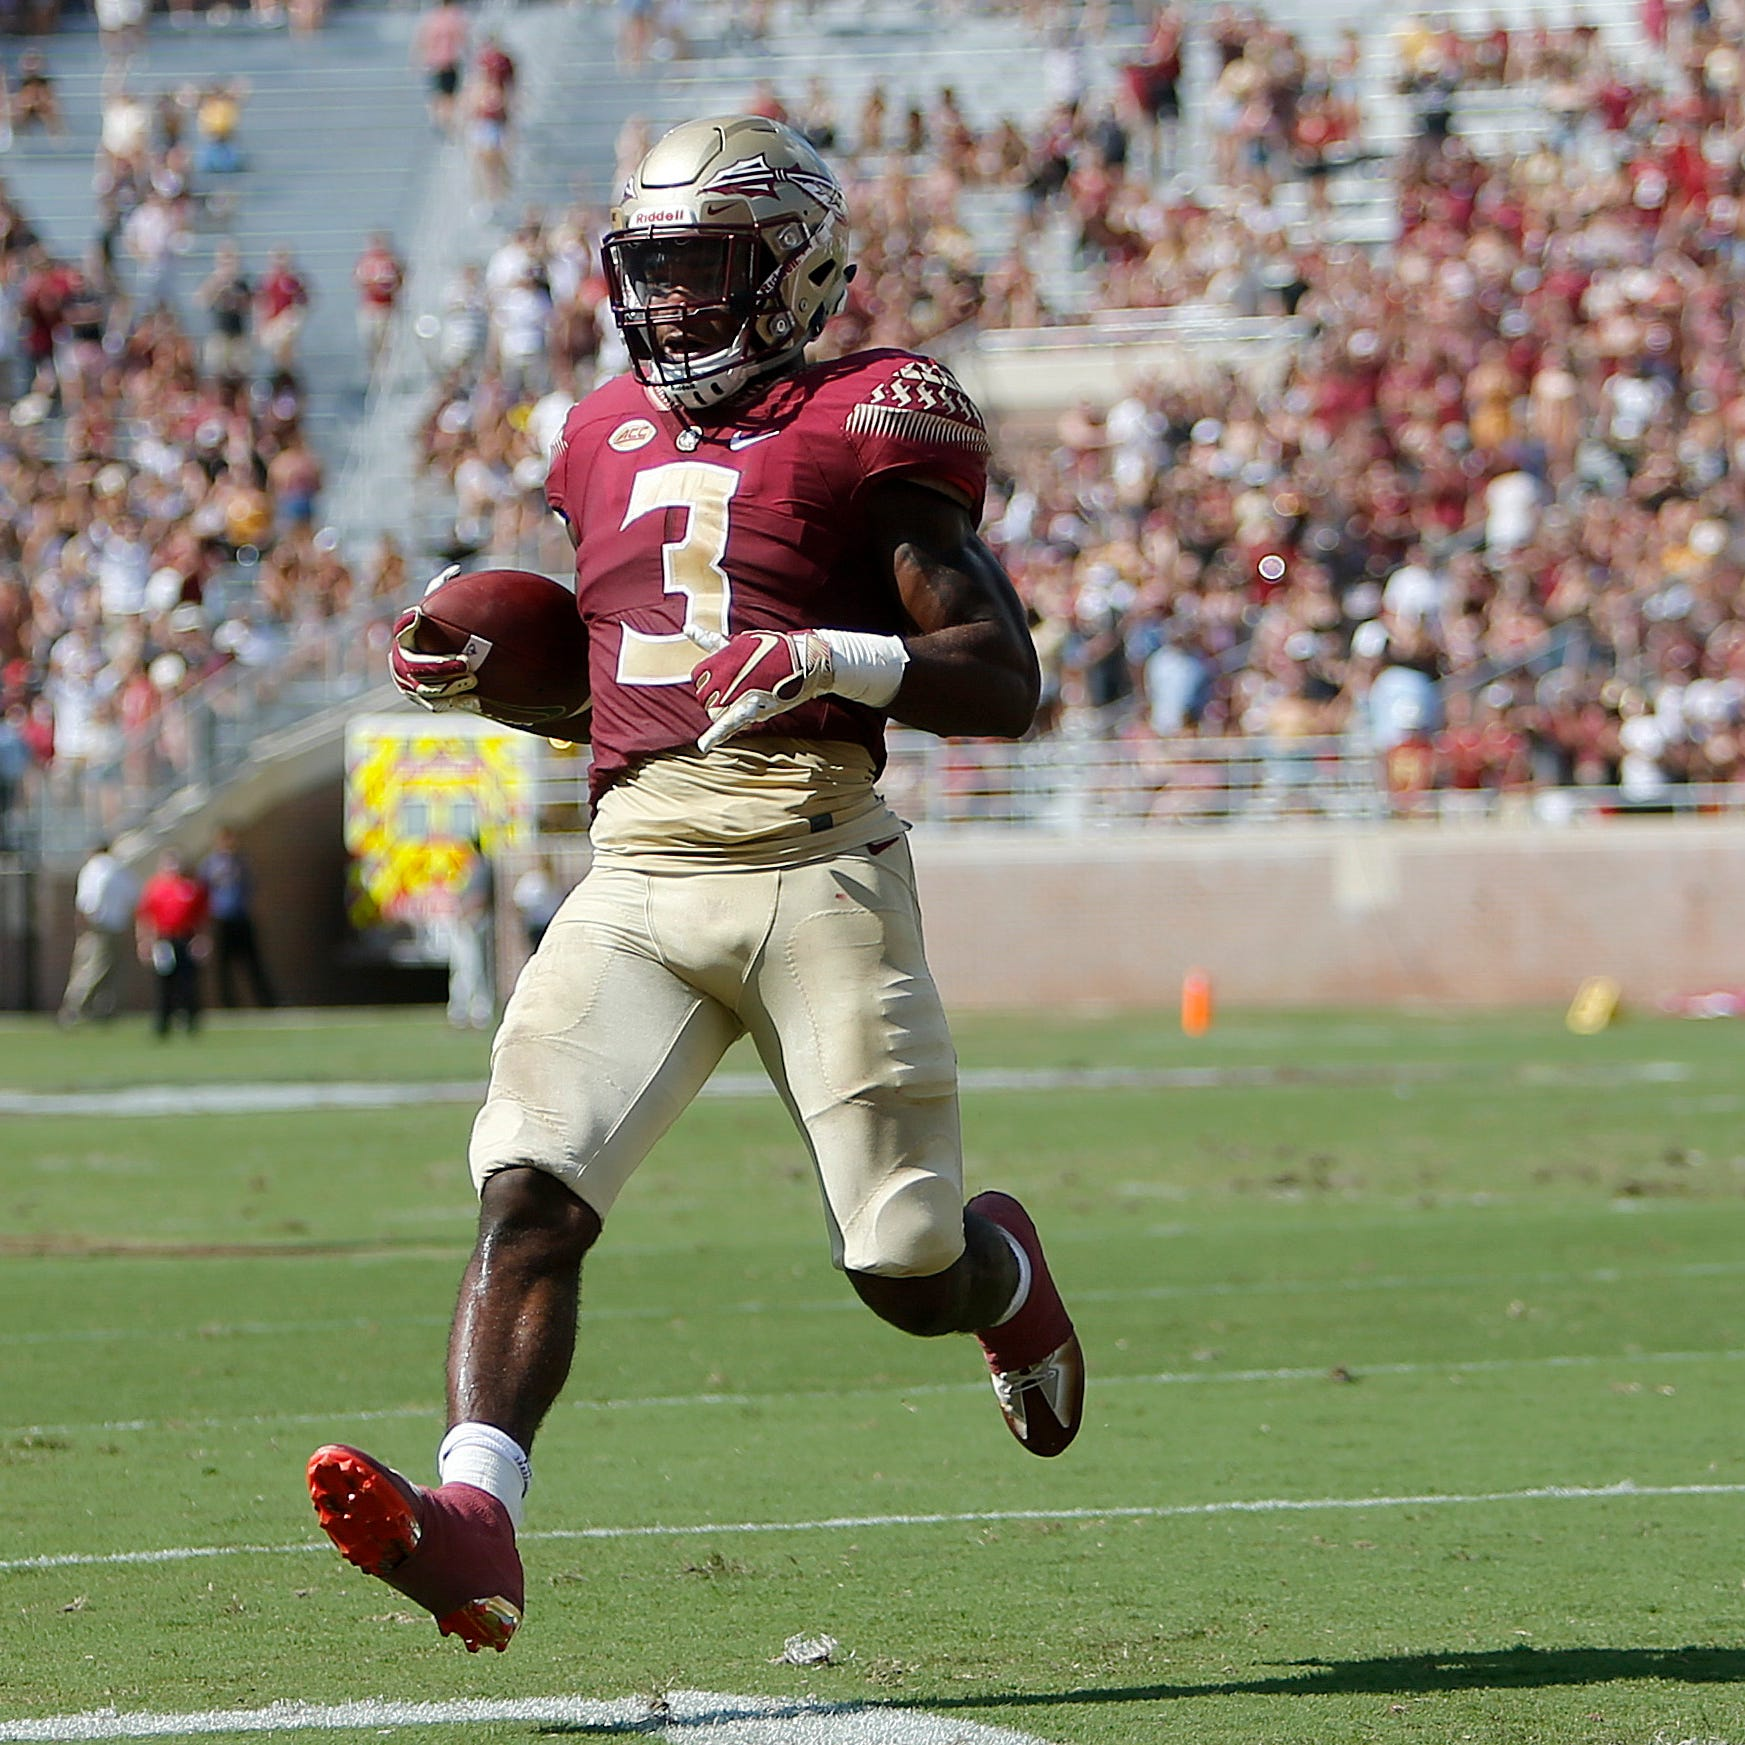 Florida State shows glimpses of what offense can be|Wayne McGahee